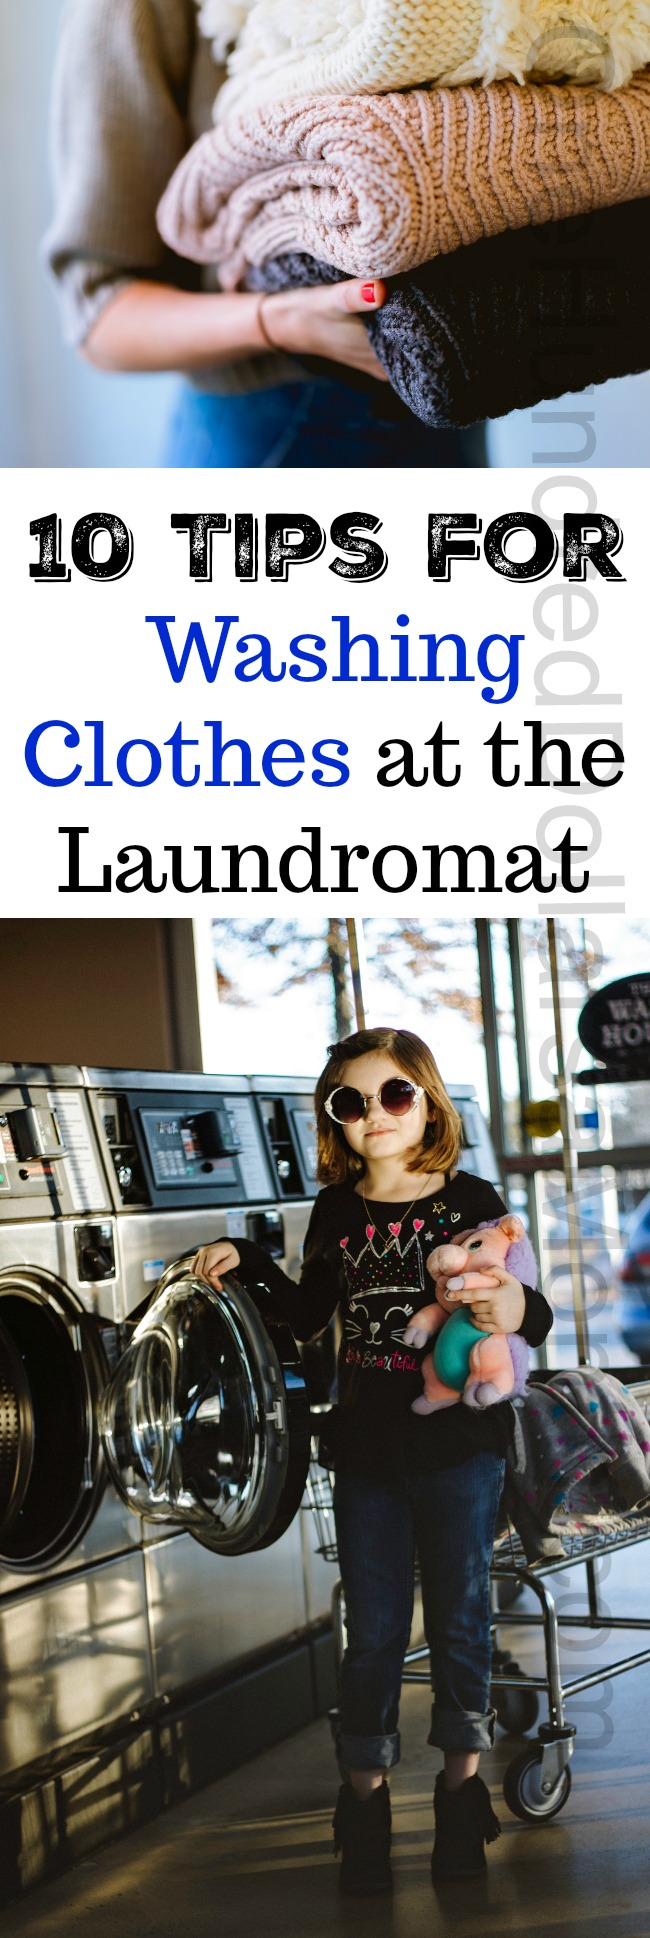 10 Tips for Washing Clothes at the Laundromat - One Hundred